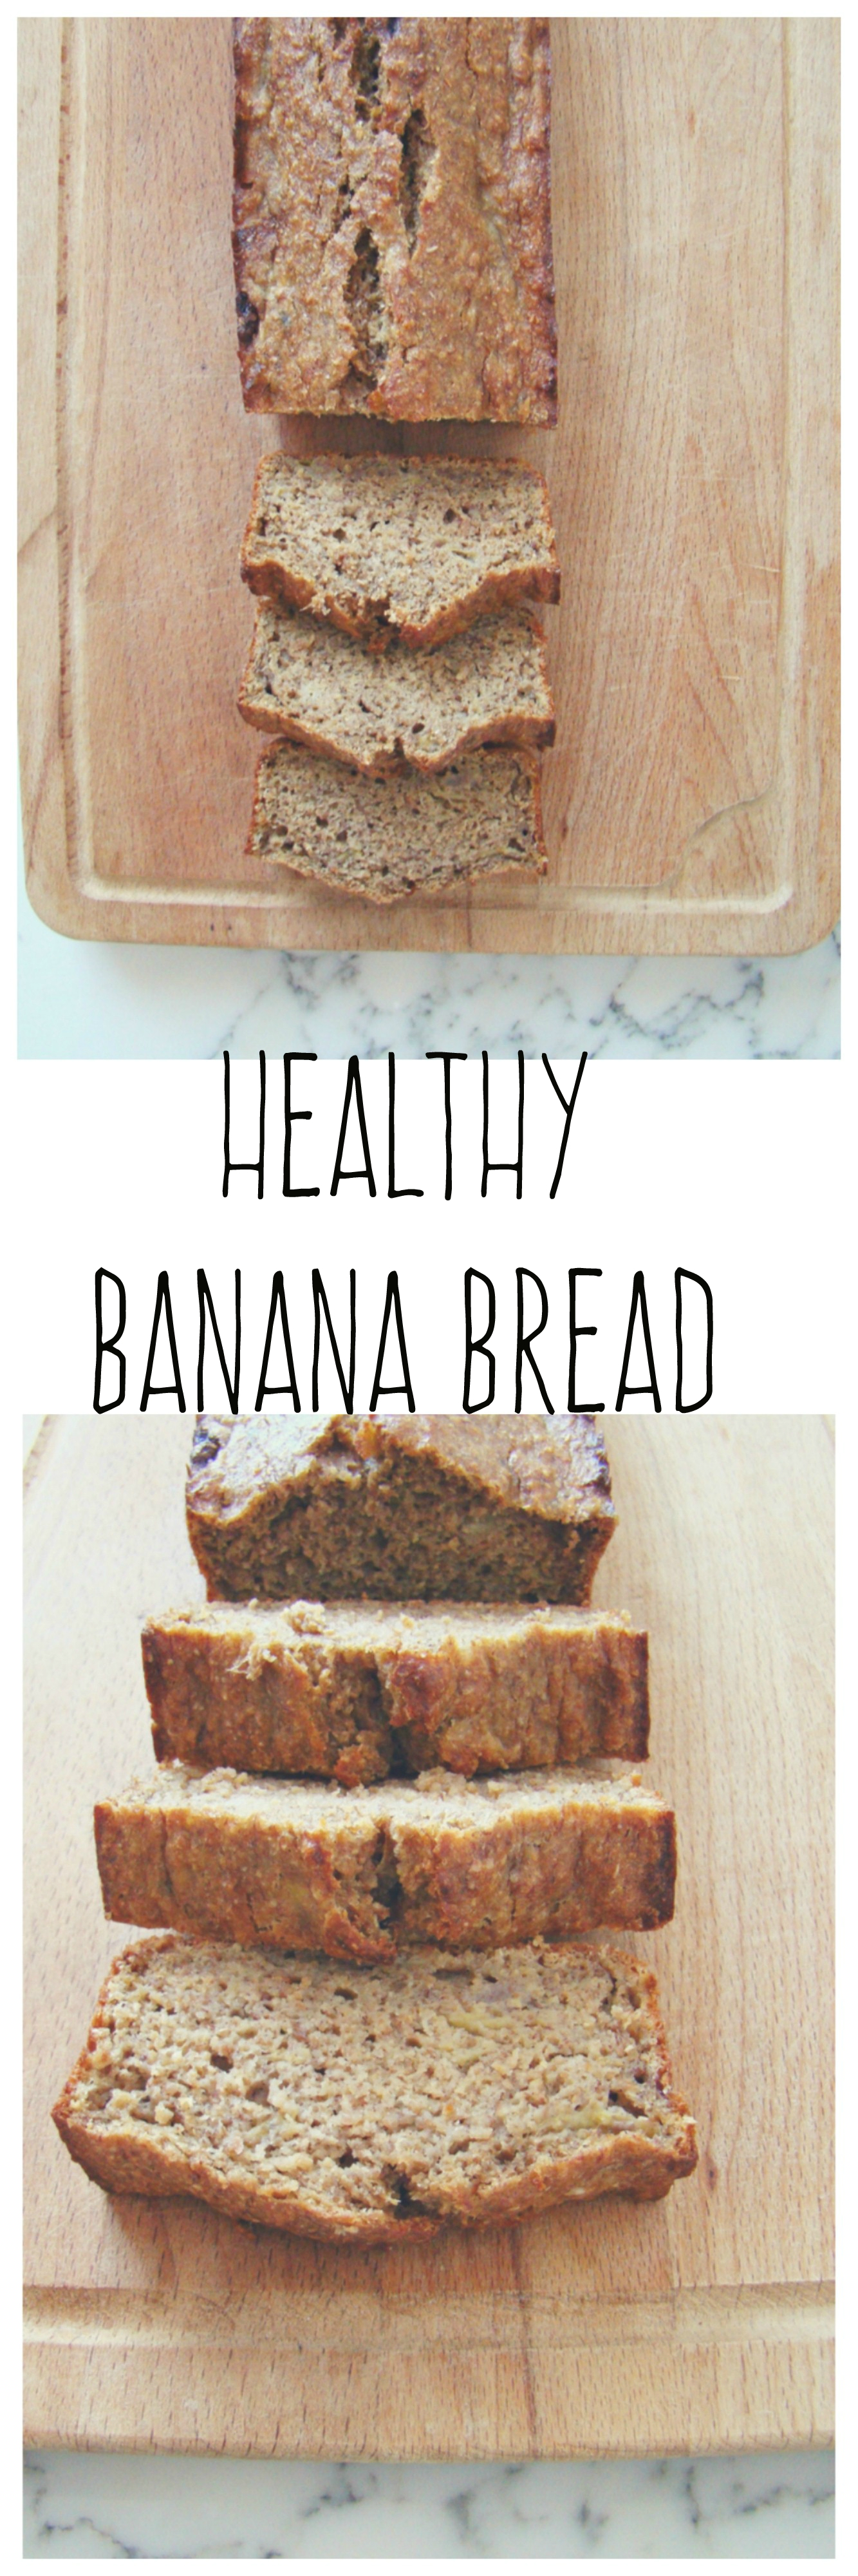 Healthy Banana Bread | booksandlavender.com